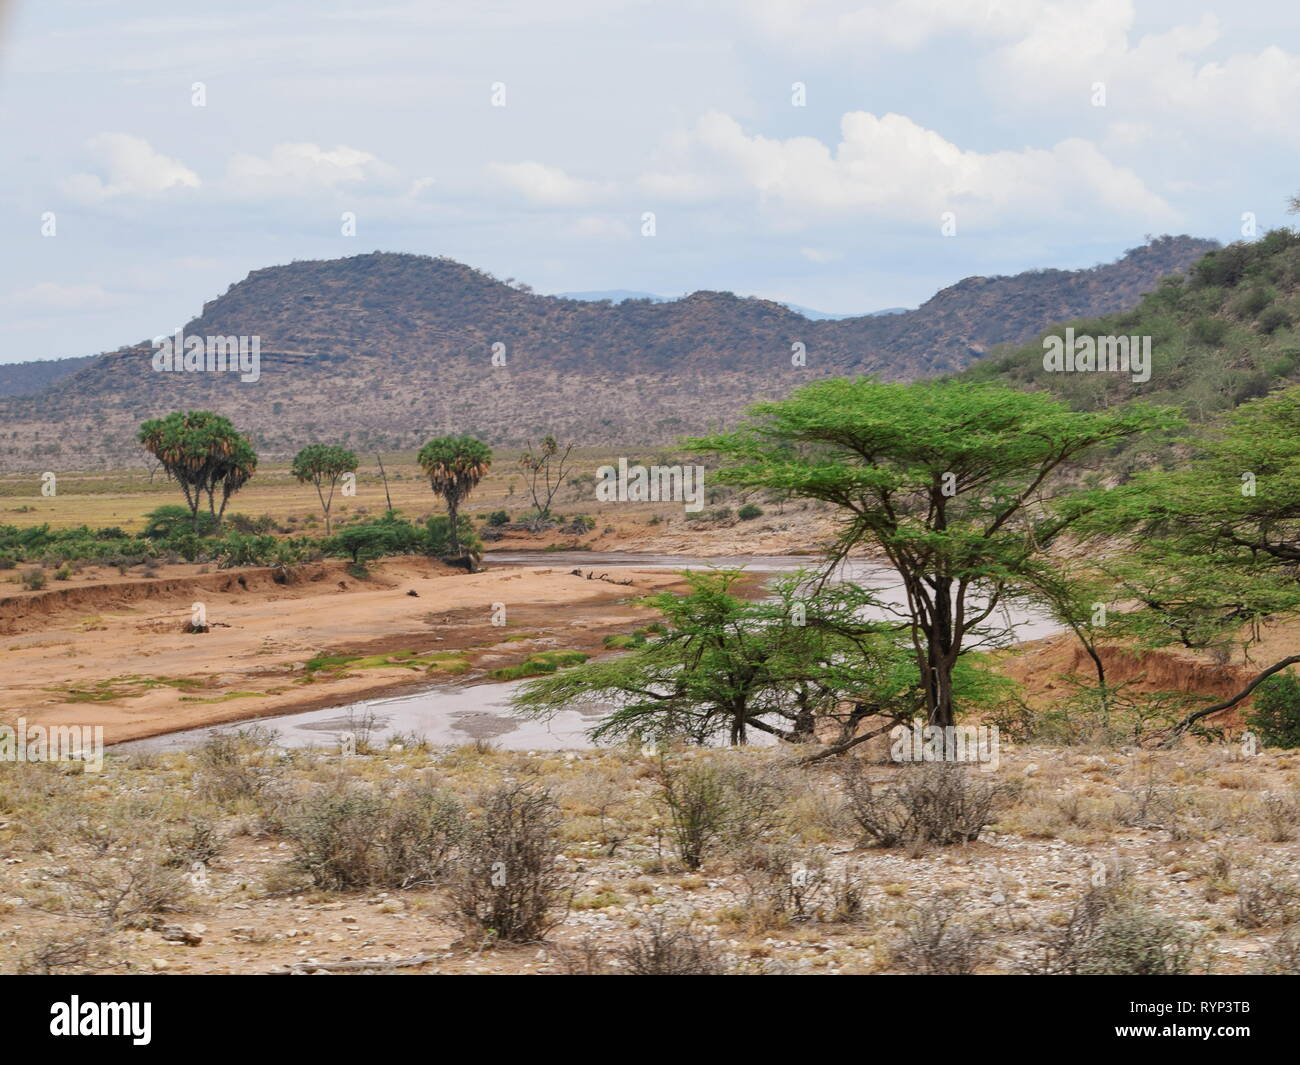 Ewaso Nyiro River Stock Photos & Ewaso Nyiro River Stock